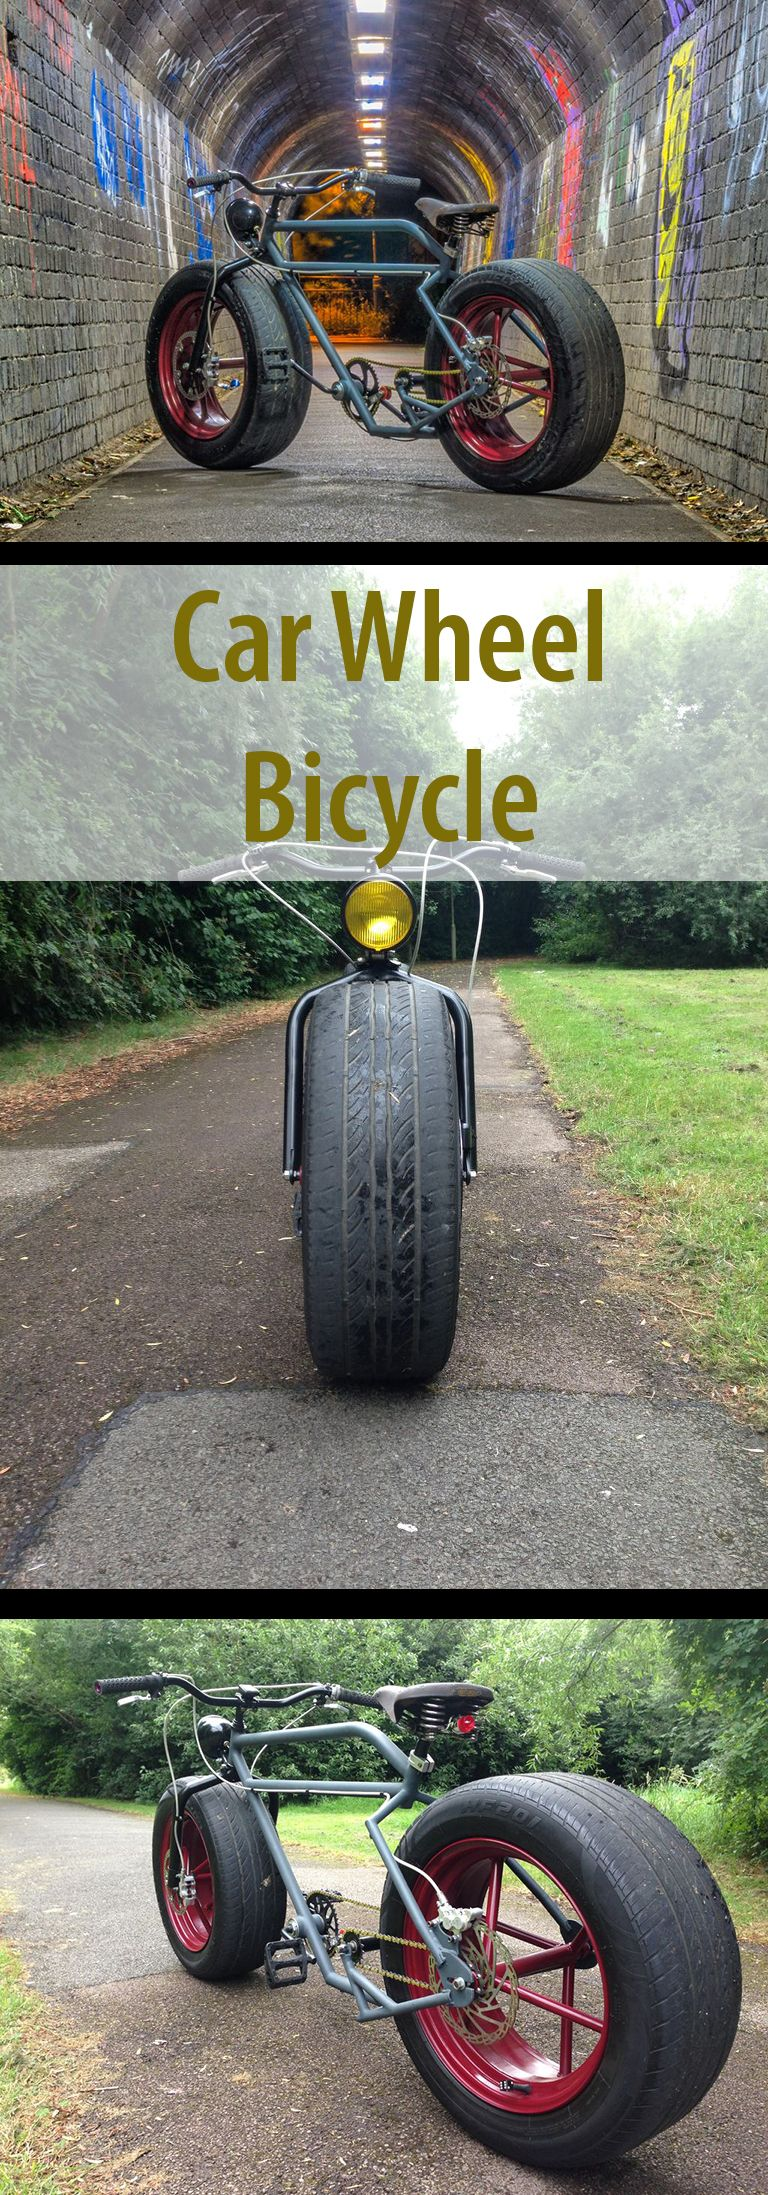 Car Wheel Bicycle - the Learn to Weld Project | Bikes | Pinterest ...